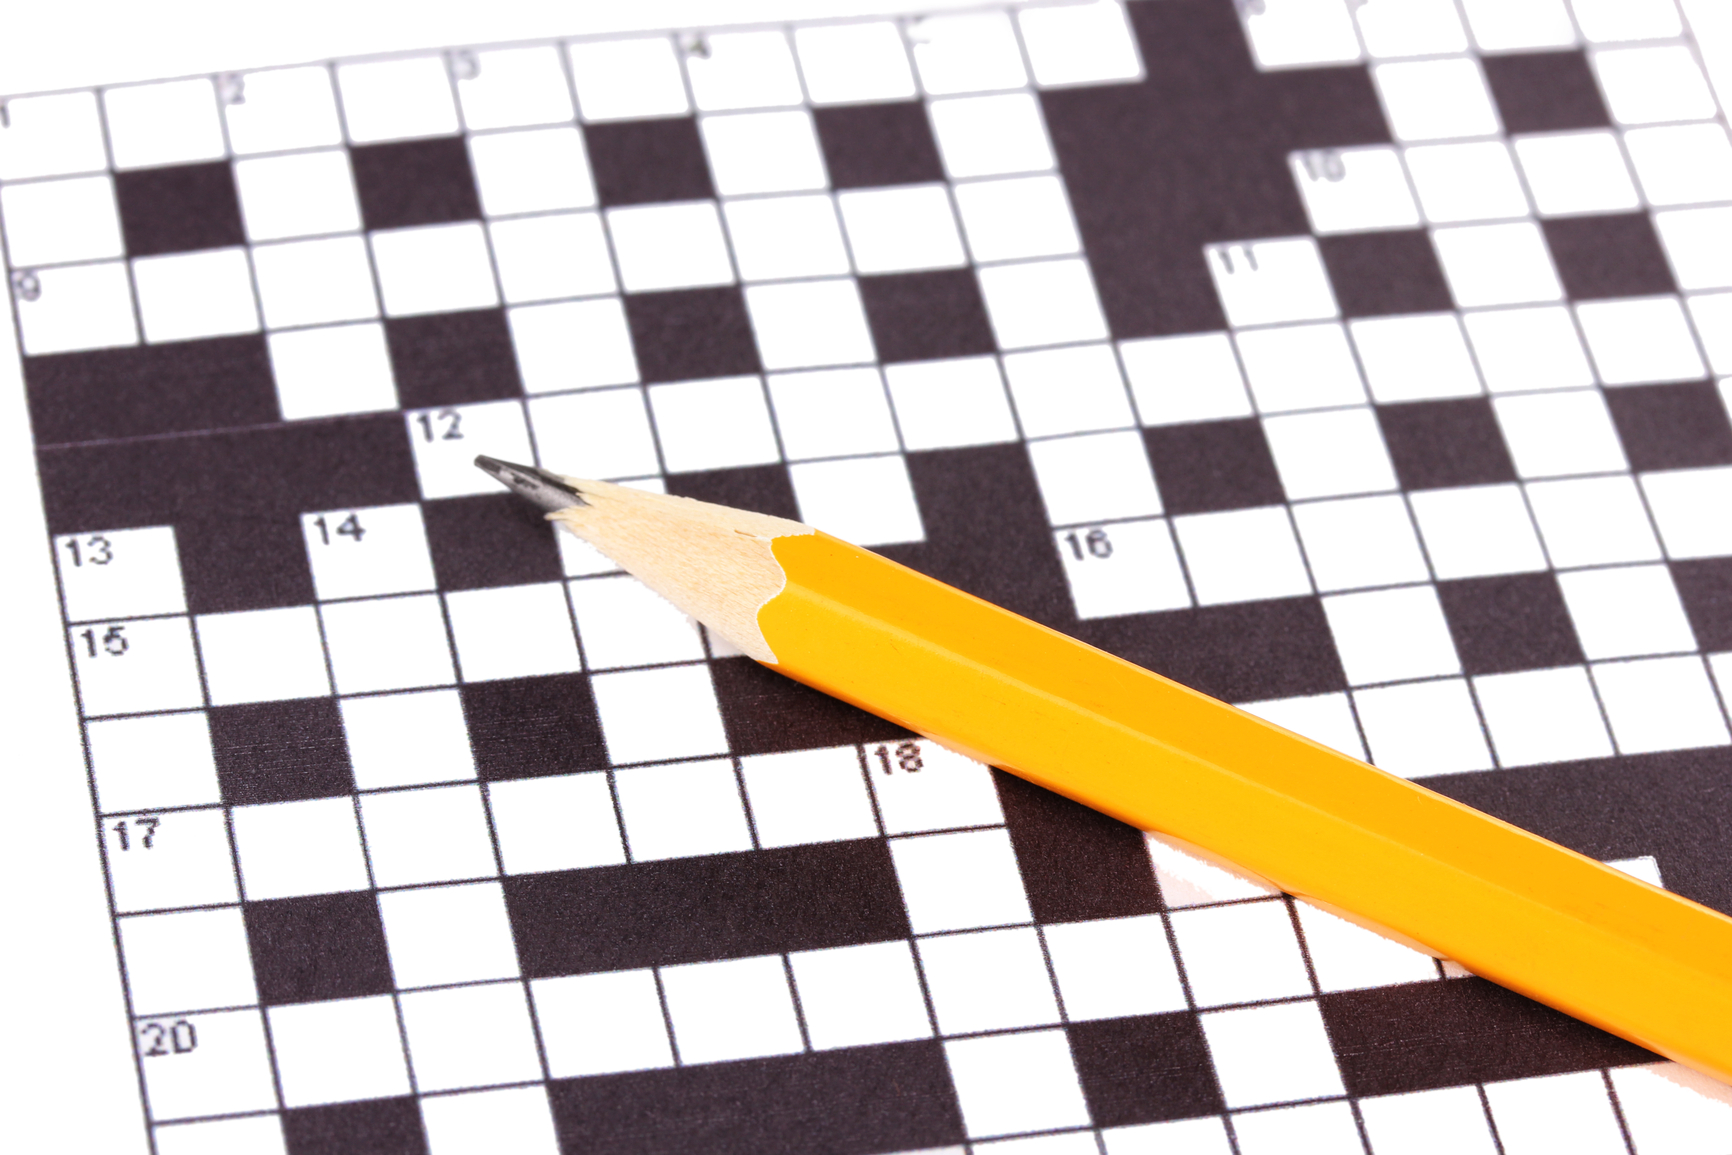 Our first ever Daily Crossword is here